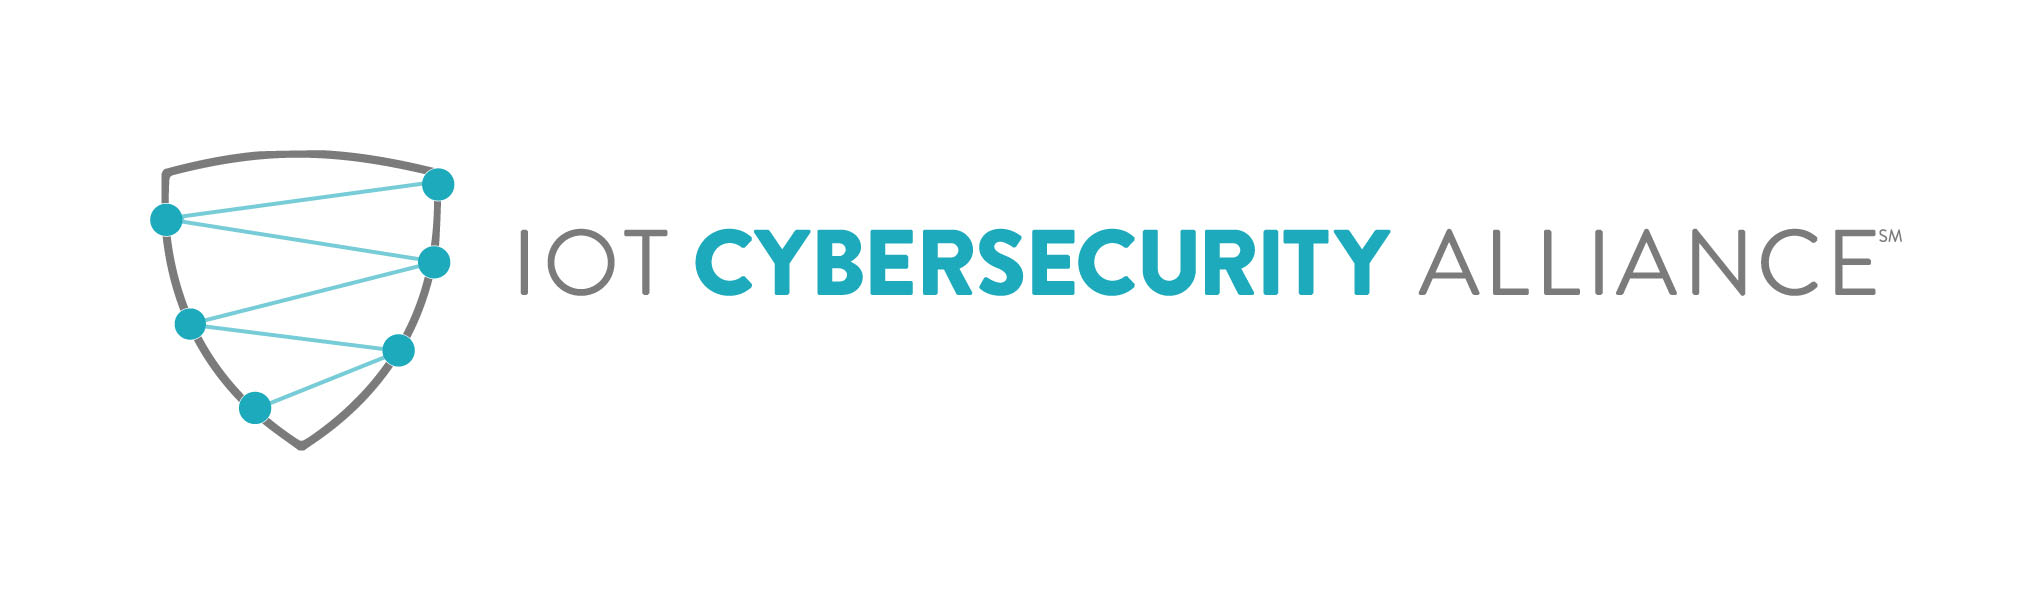 Cybersecurity alliance header image